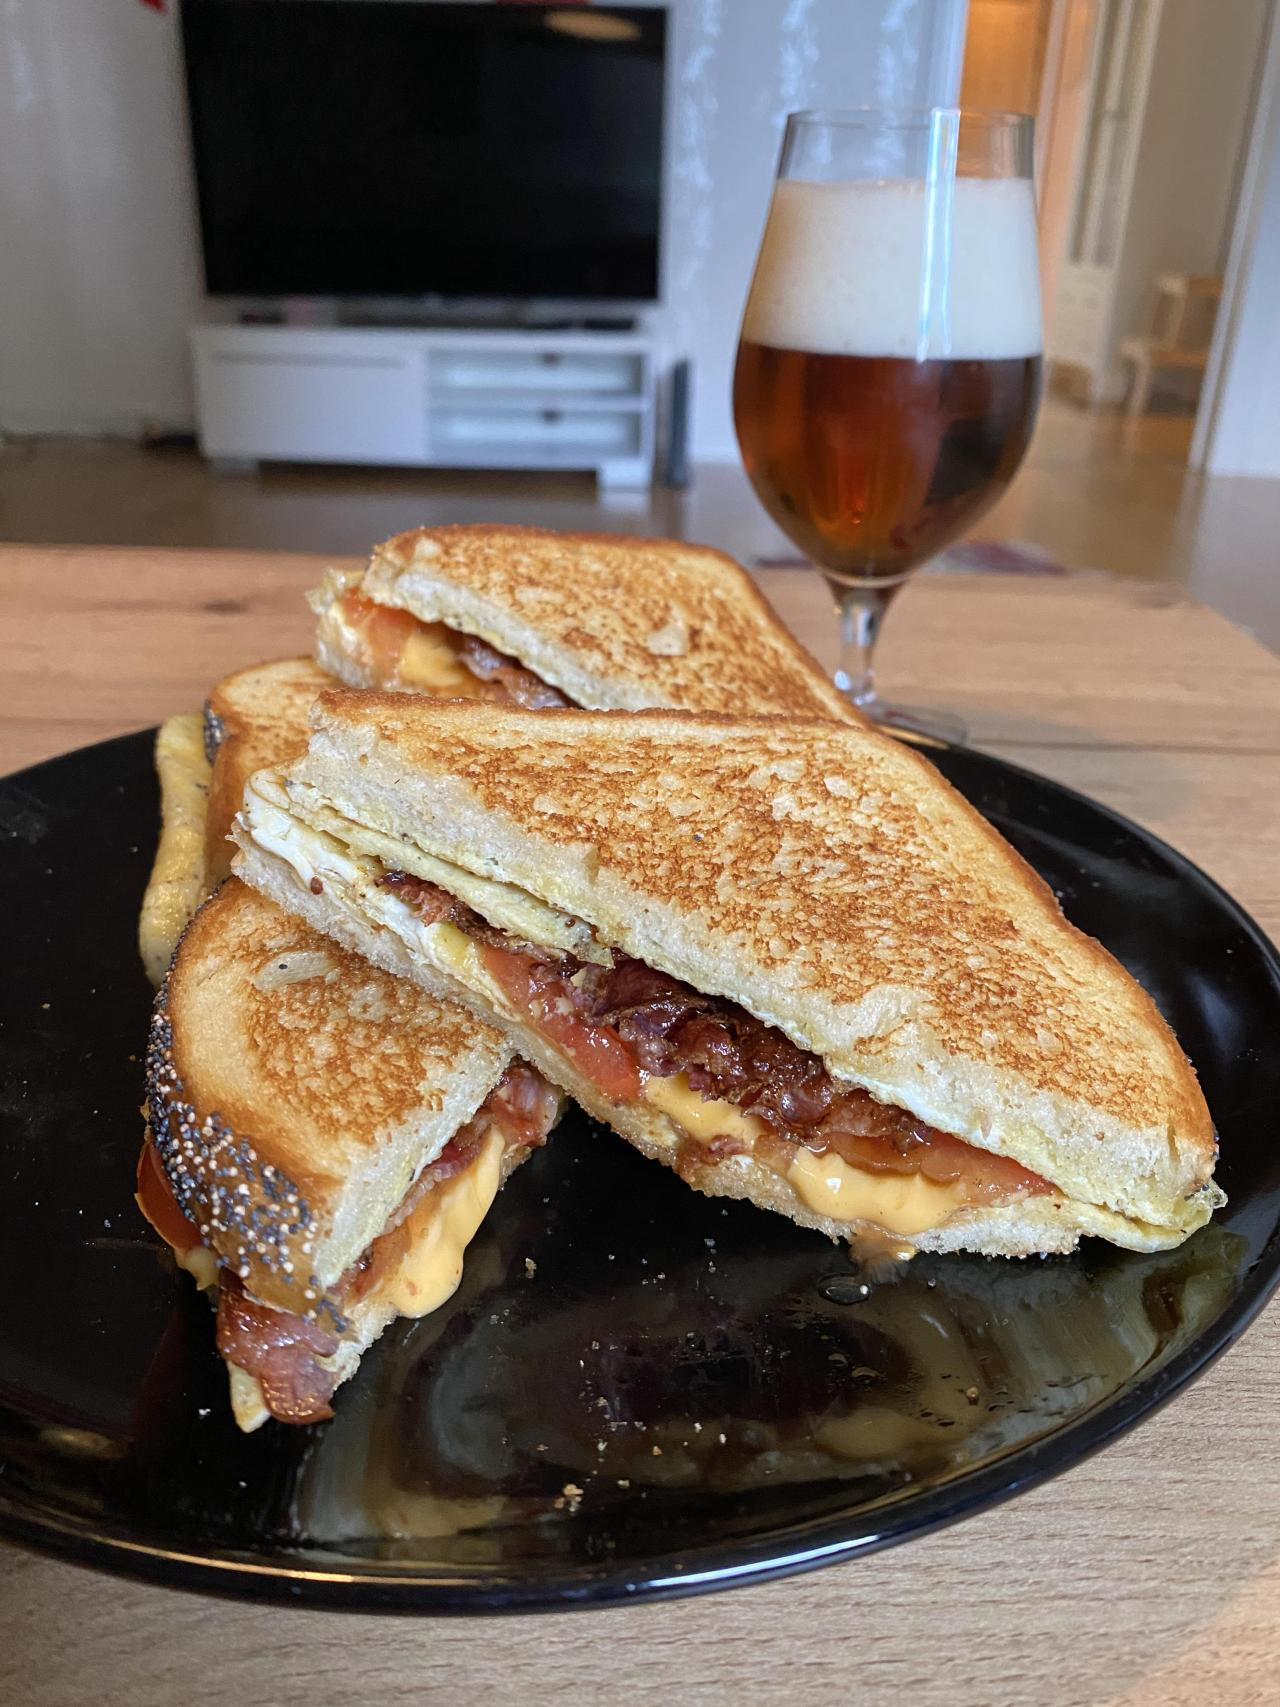 One of my favorite sandwiches, the egg bacon and grilled cheese sandwich. With the beverage of life of course. Source: https://reddit.com/r/foodpornhttps://foodmyheart.tumblr.com | https://campsite.bio/foodmyheart #food#foodpics#foodporn#yummy#breakfast#lunch#dinner#foods#foodies#foodmyheart